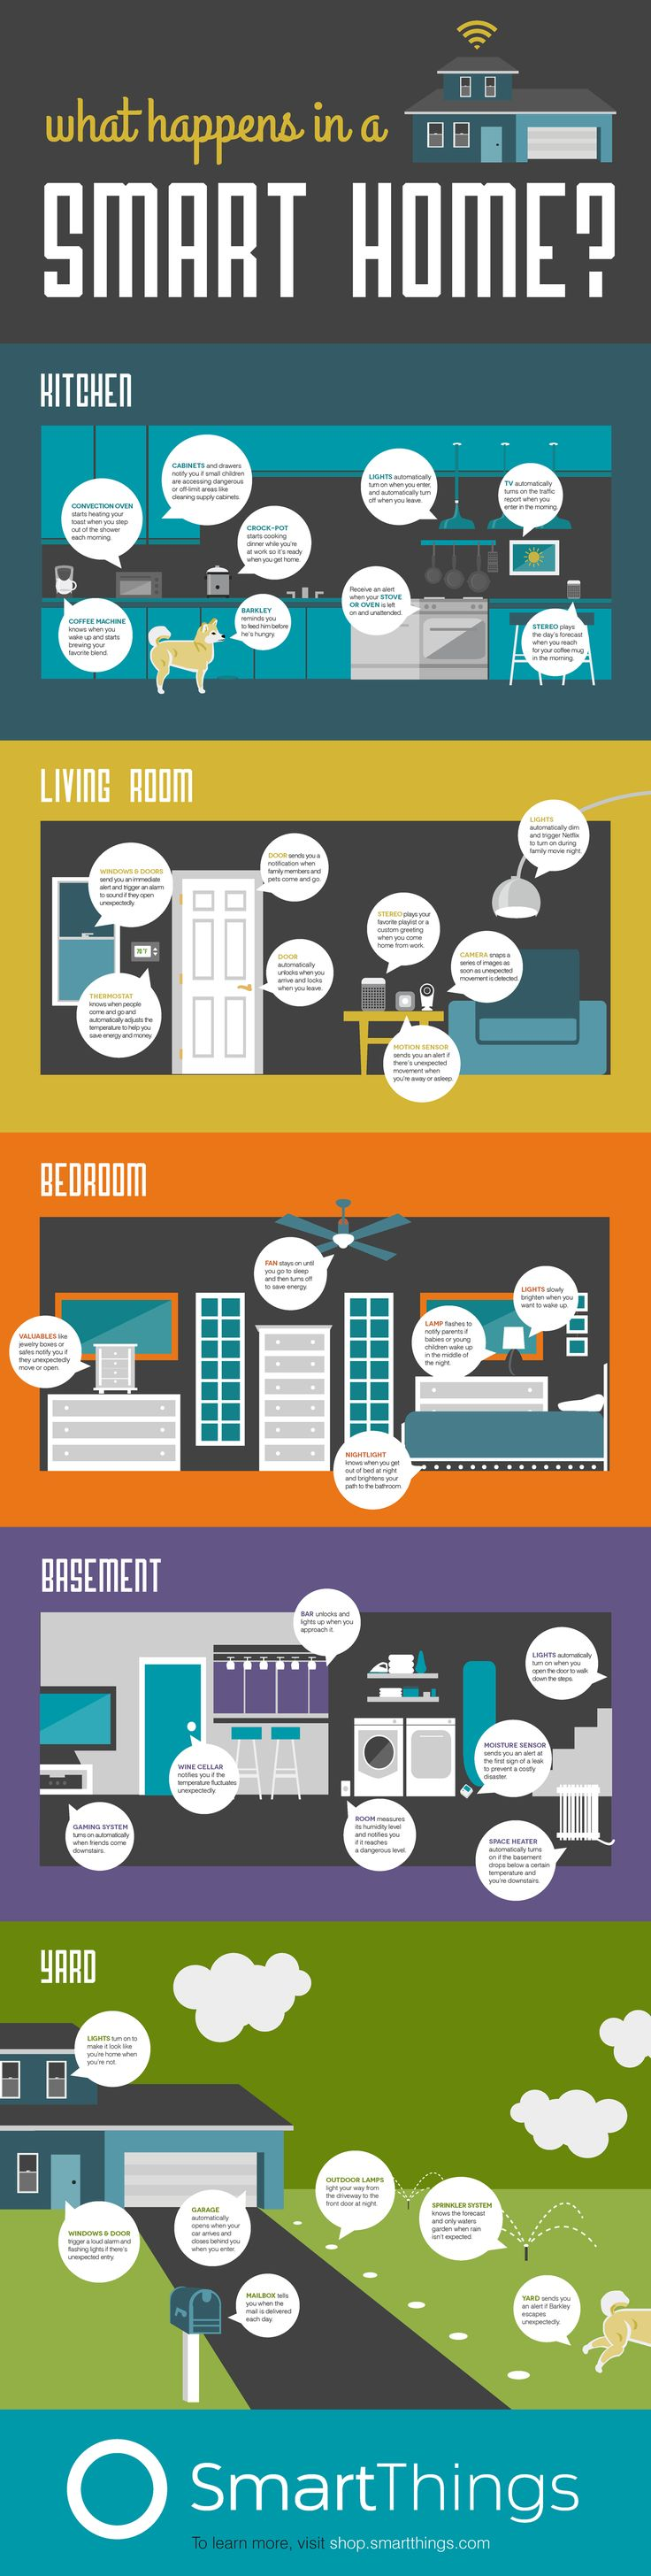 hight resolution of smart home on pinterest explore 50 ideas with smart home technology smart home control and smart home automation and more